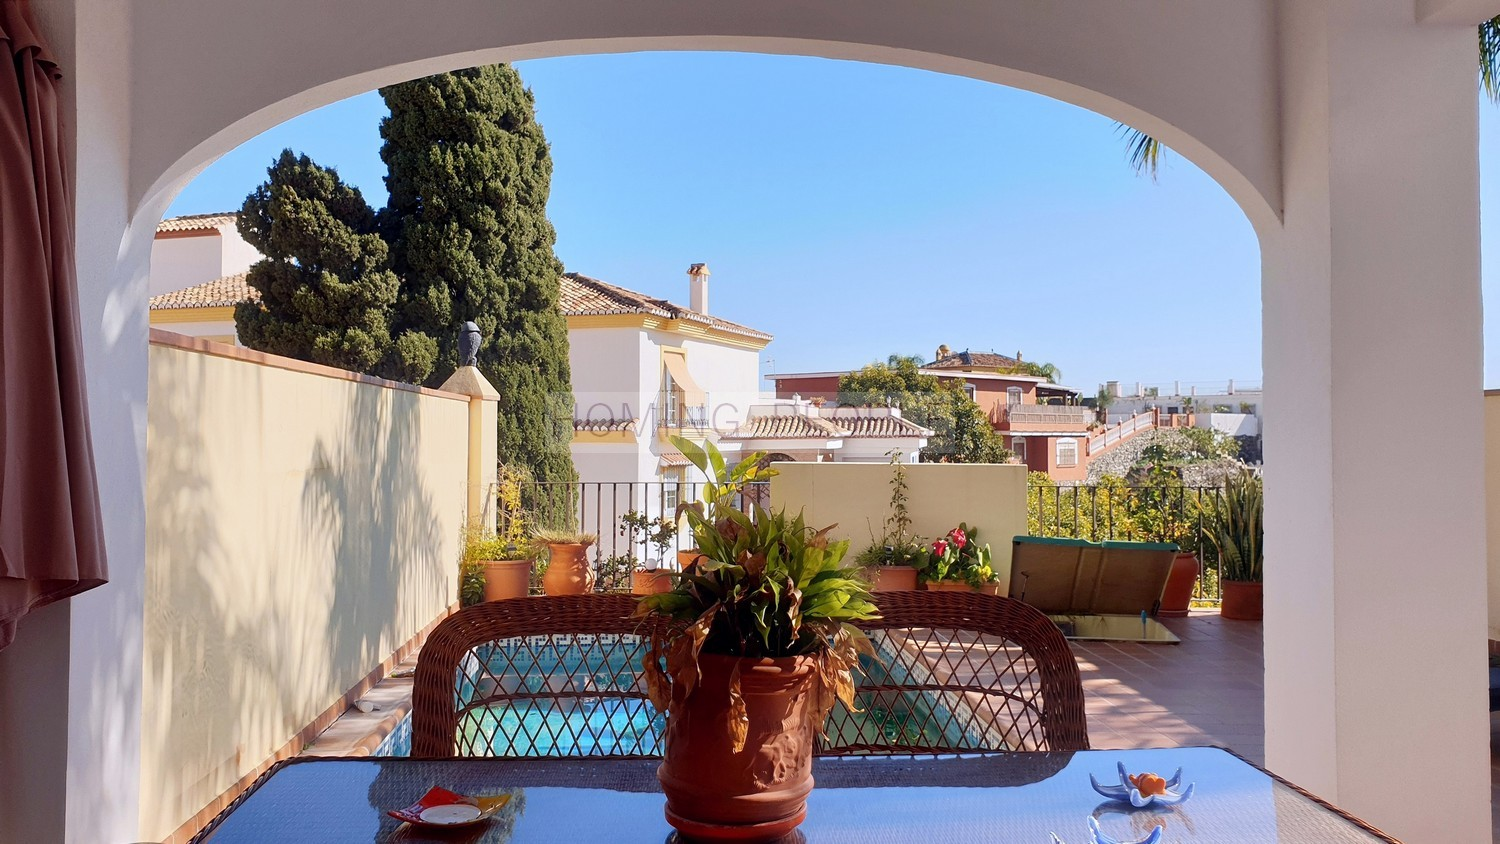 RENTED OUT. Quality terraced house with private pool and garage, in a residential area 5 minutes from the centre and the beach